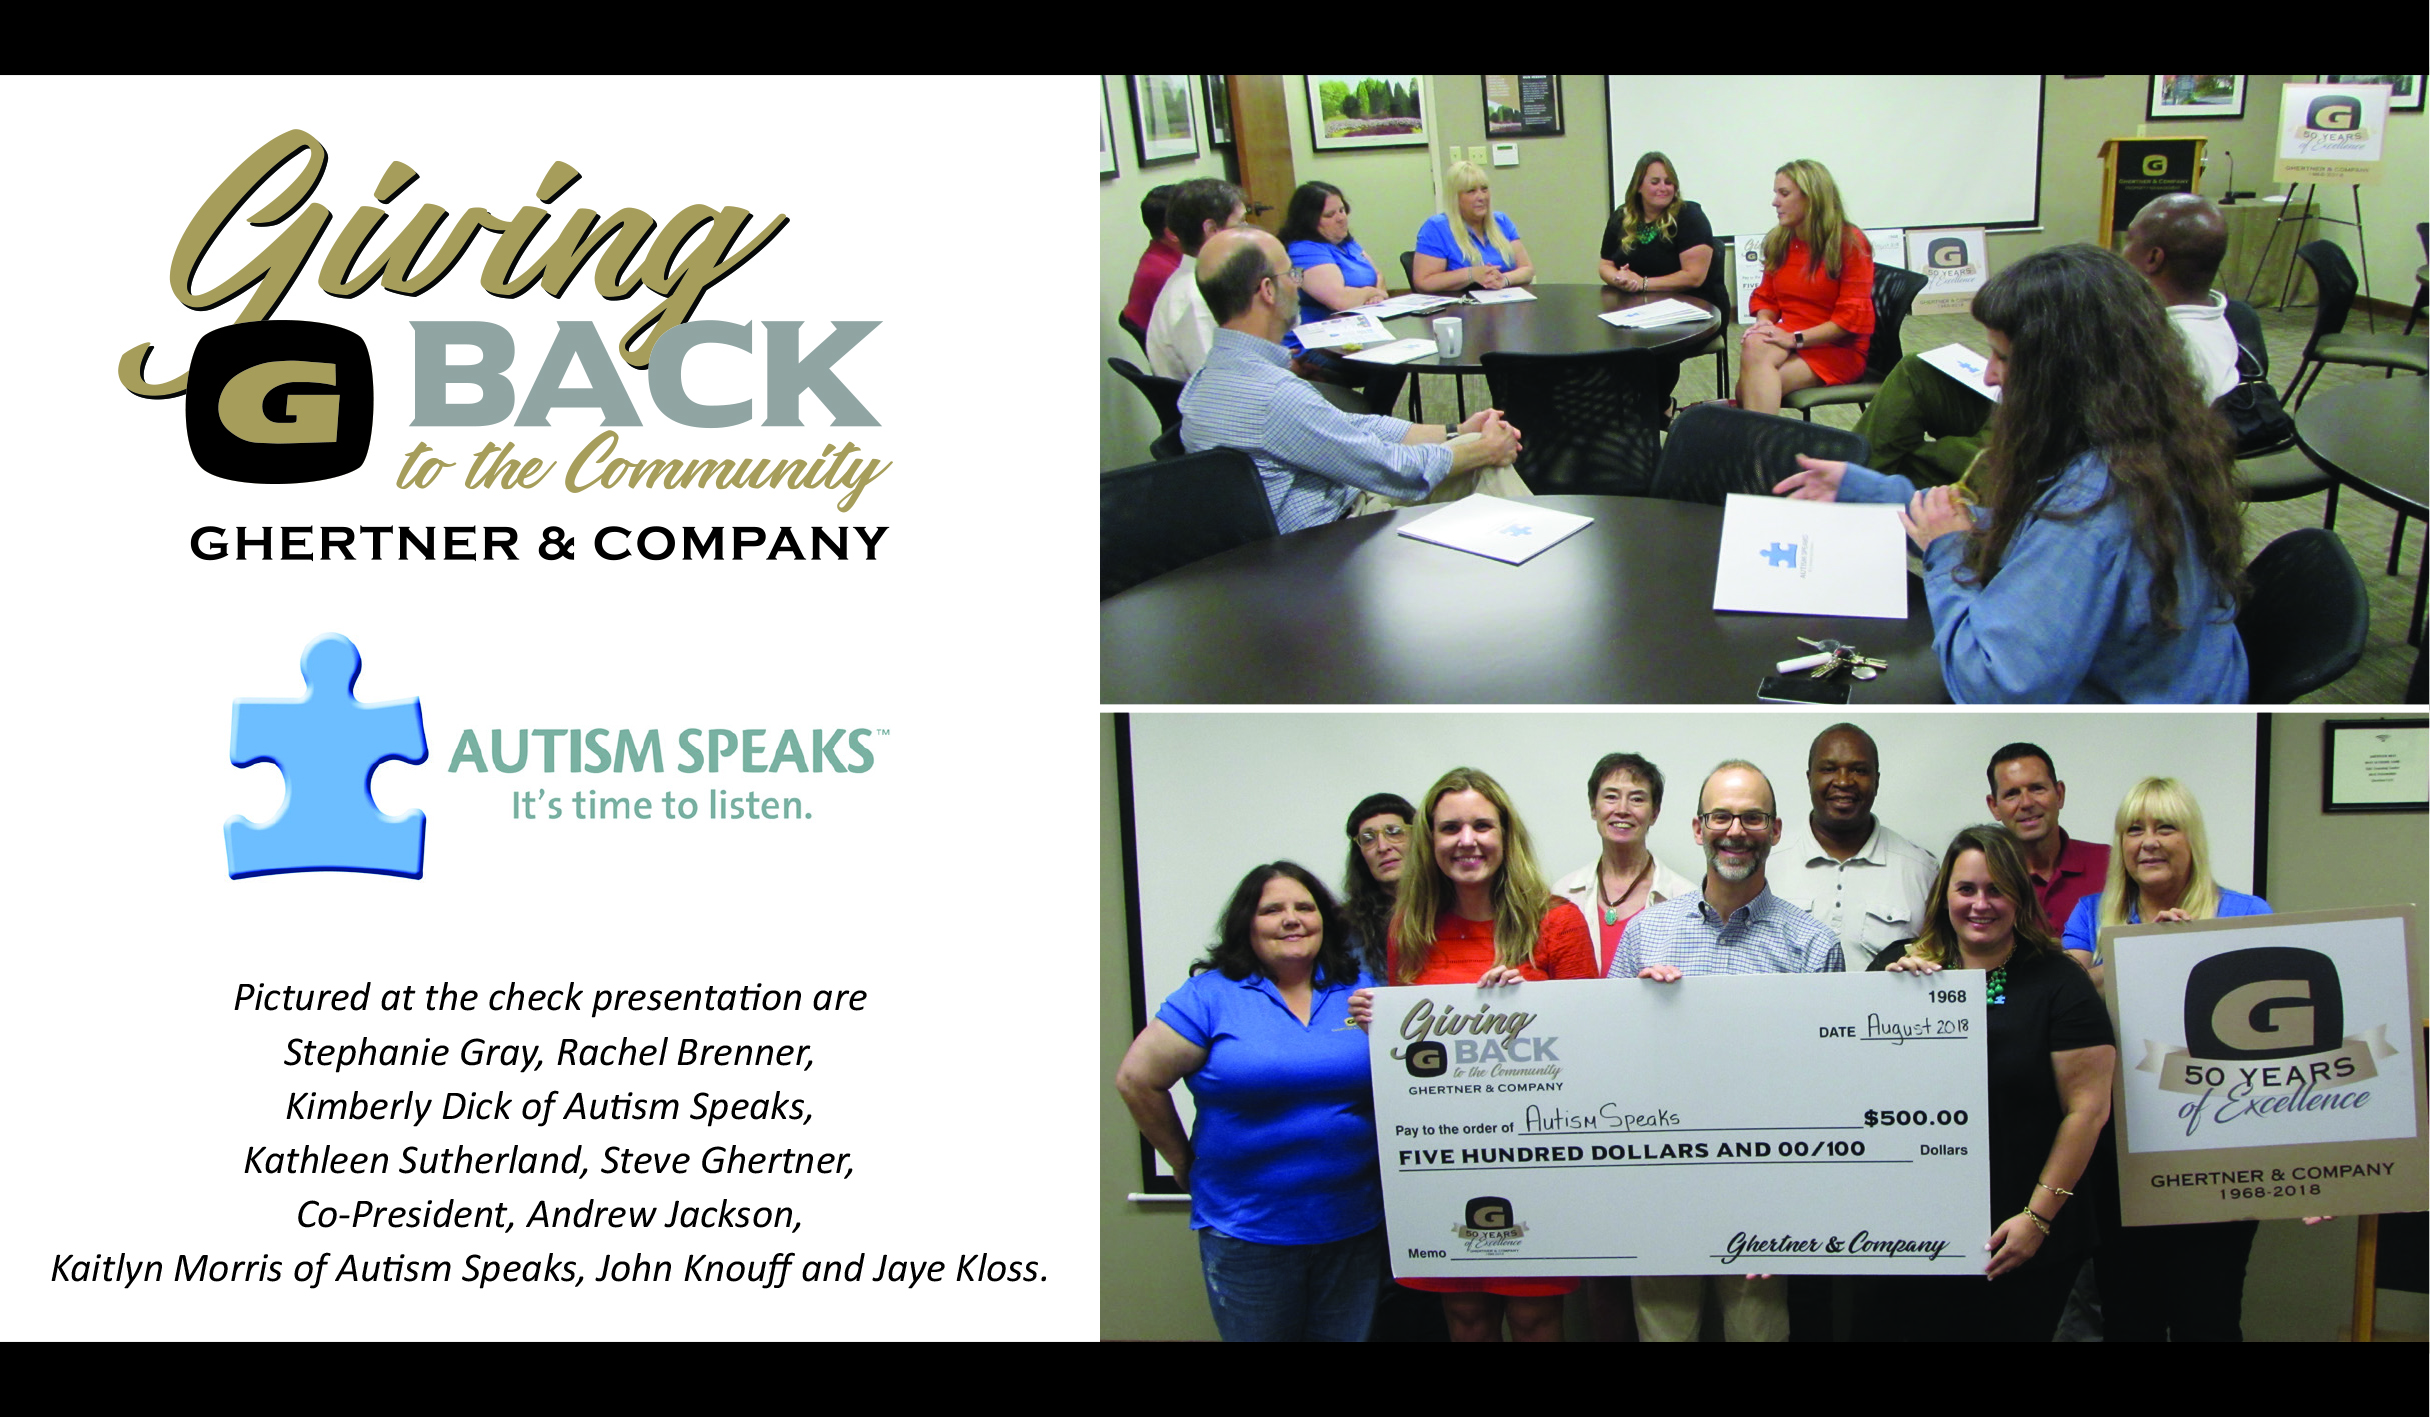 "In celebration of our 50th Anniversary, Ghertner & Company's ""Giving Back to our Community"" effort supports non-profit organizations within Middle Tennessee who are making a difference in the lives of those they serve.   Autism Speaks  was the recipient of the August donation and emphasis.  Autism Speaks is dedicated to promoting solutions, across the spectrum and throughout the life span, for the needs of individuals with autism and their families through advocacy and support; increasing understanding and acceptance of people with autism spectrum disorder; and advancing research into causes and better interventions for autism spectrum disorder and related conditions.  Representatives from Autism Speaks shared with and fielded questions by Ghertner & Company associates on Friday, August 24th.   Learn more at AutismSpeaks.org."